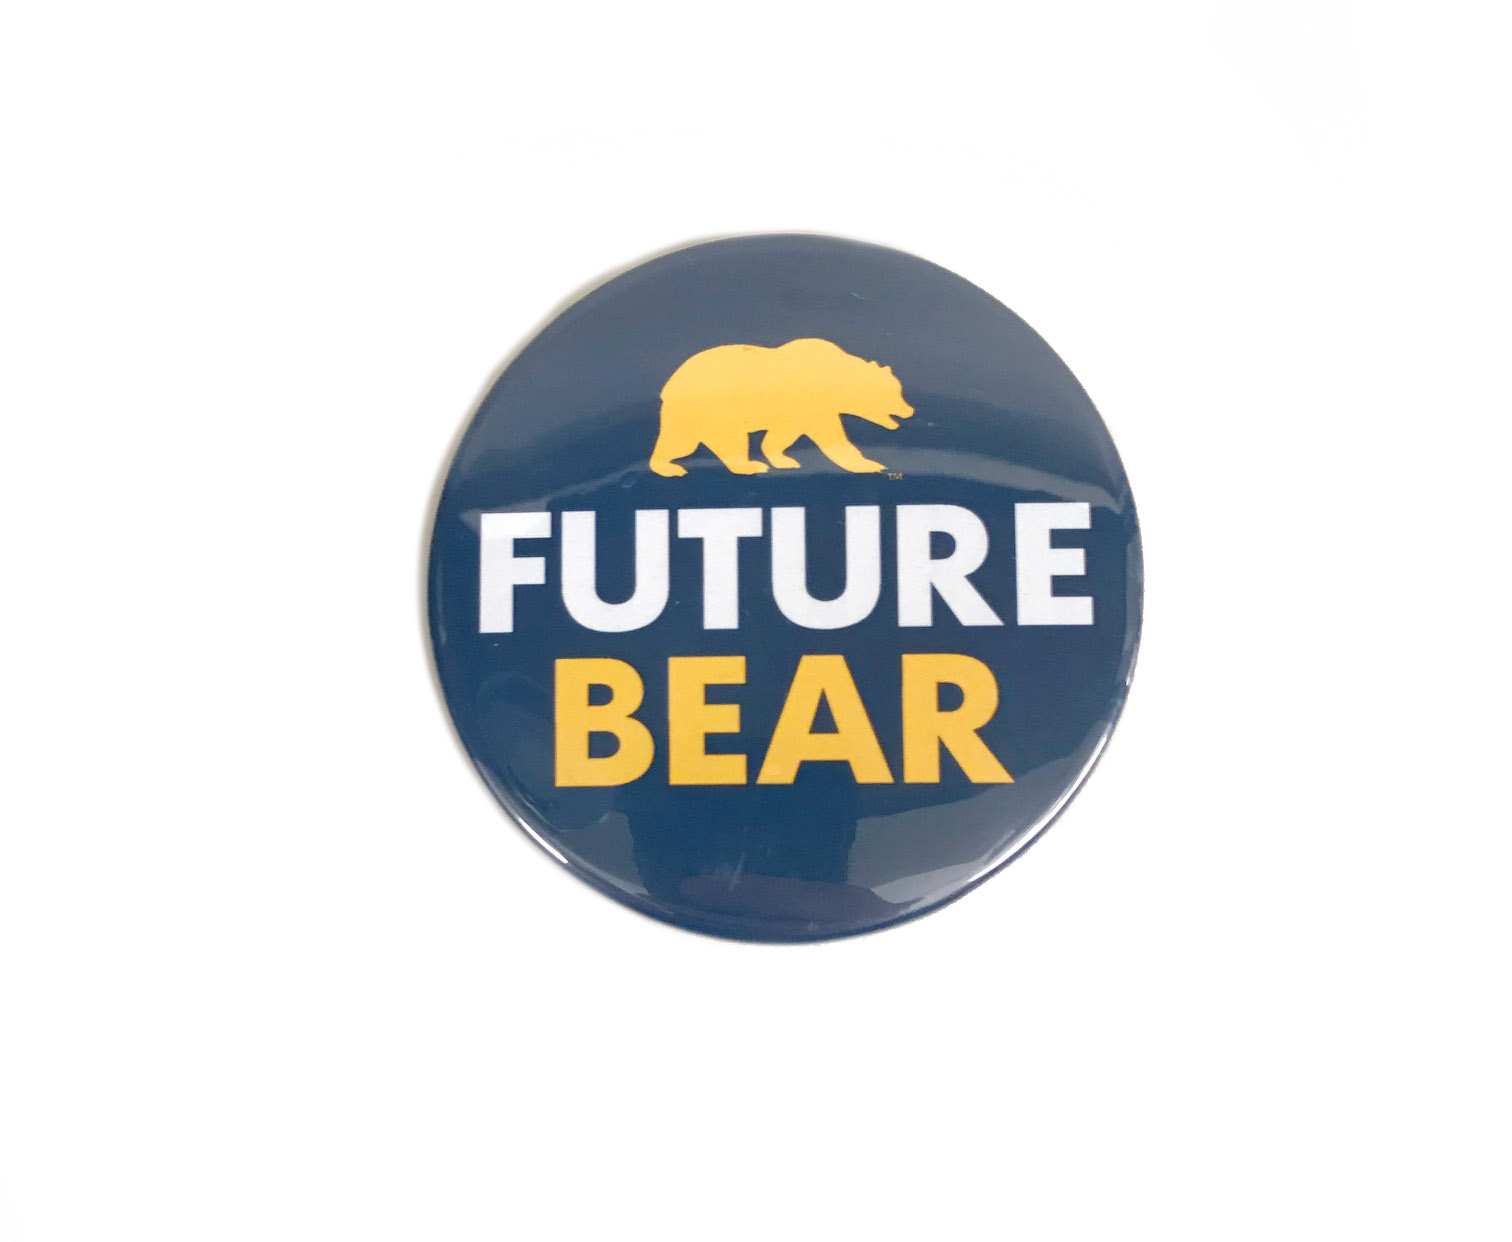 University of California Berkeley Future Bear Button